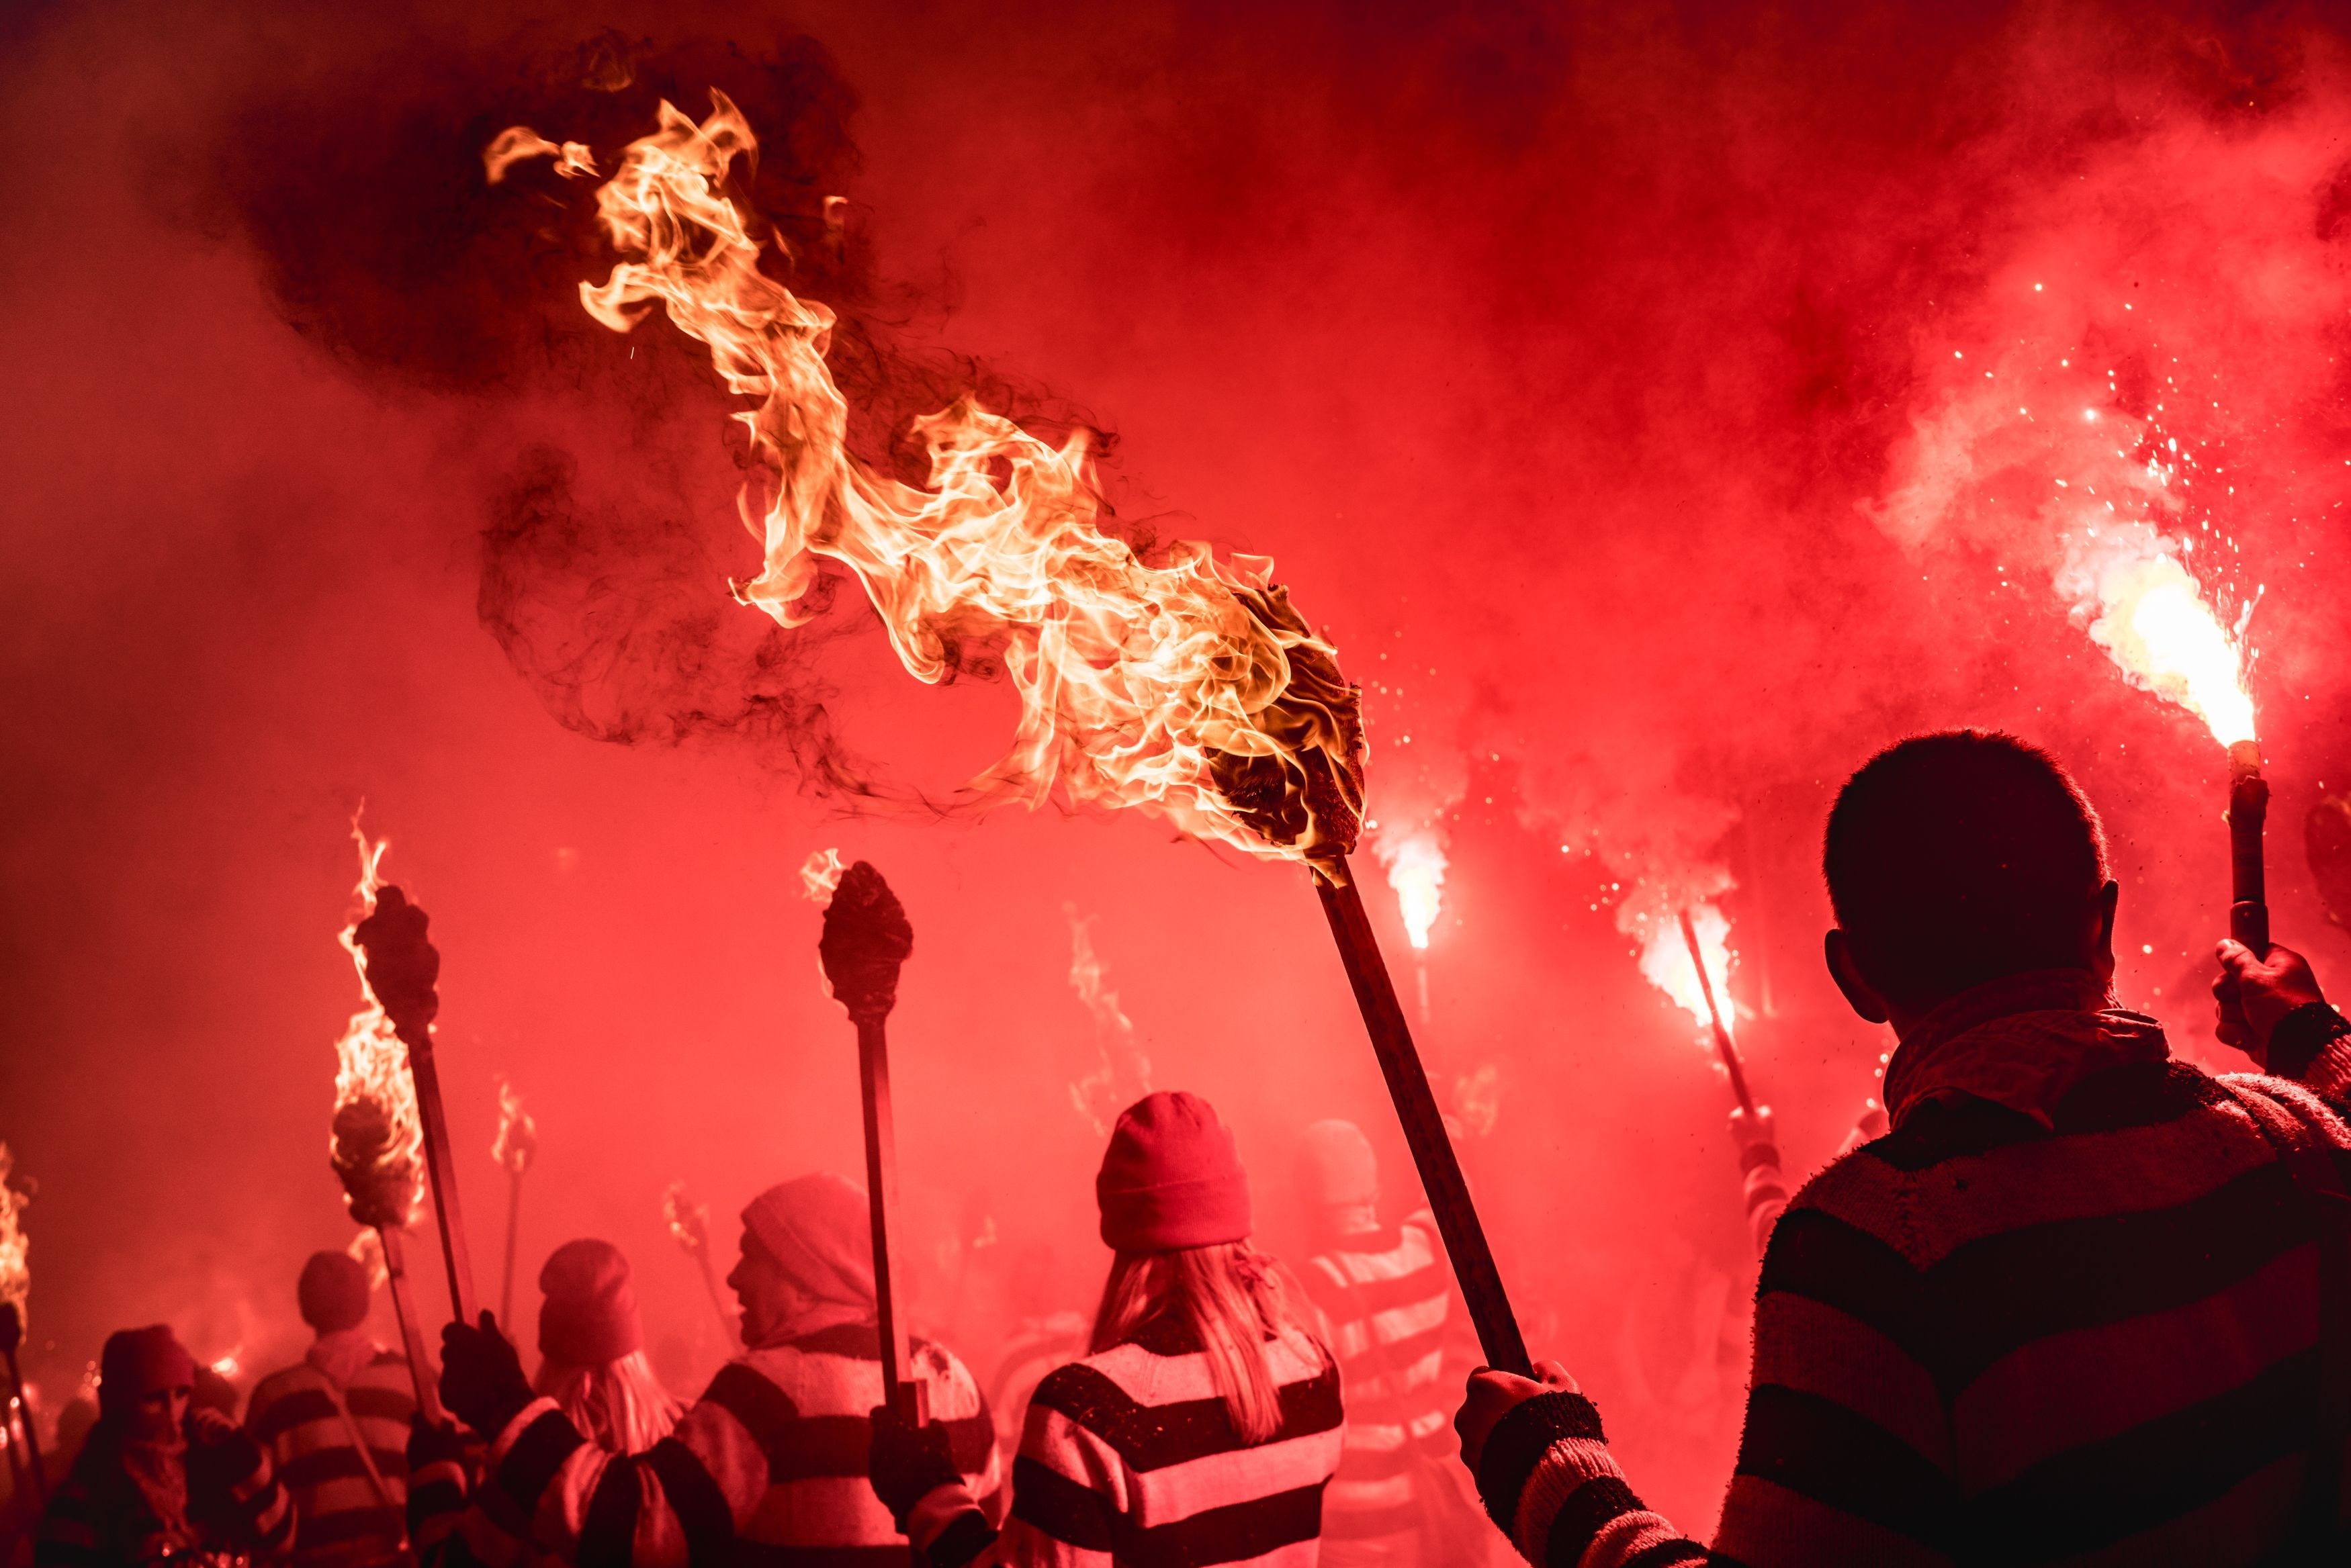 Every November 5th, Brits celebrate Guy Fawkes Night, also known as Bonfire Night. It commemorates the Gunpowder Plot of 1605, when an attempt to blow up the House of Lords was foiled. Celebrations include bonfires and fireworks, and the biggest celebration of all happens in the town of Lewes, shown here.